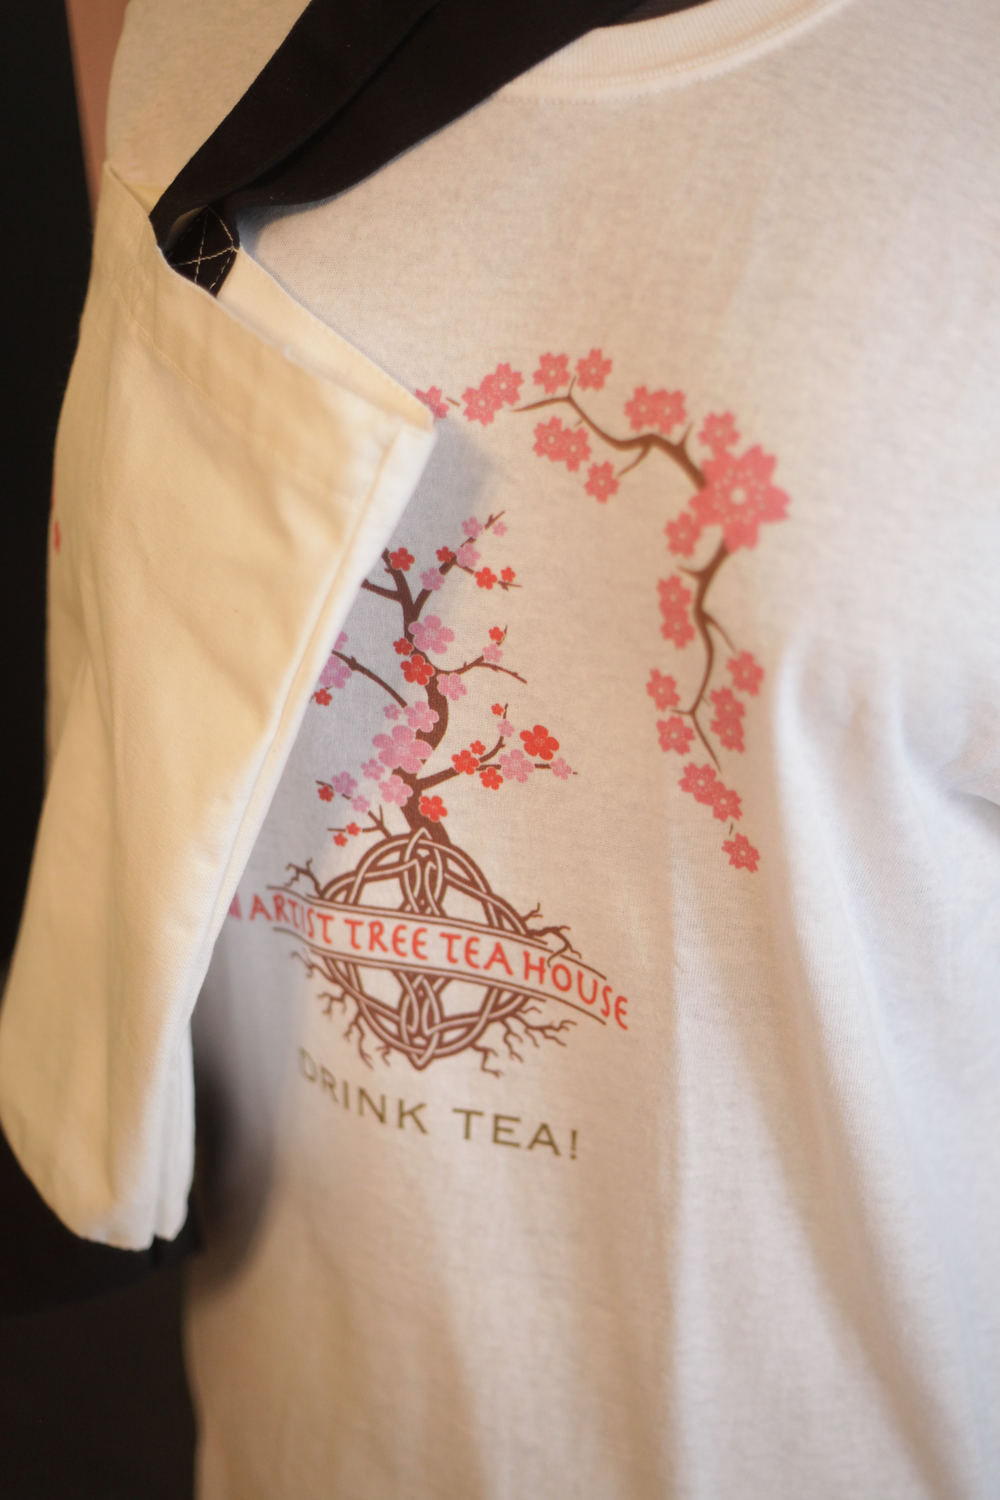 Gift items are for sale including shirts and totes.